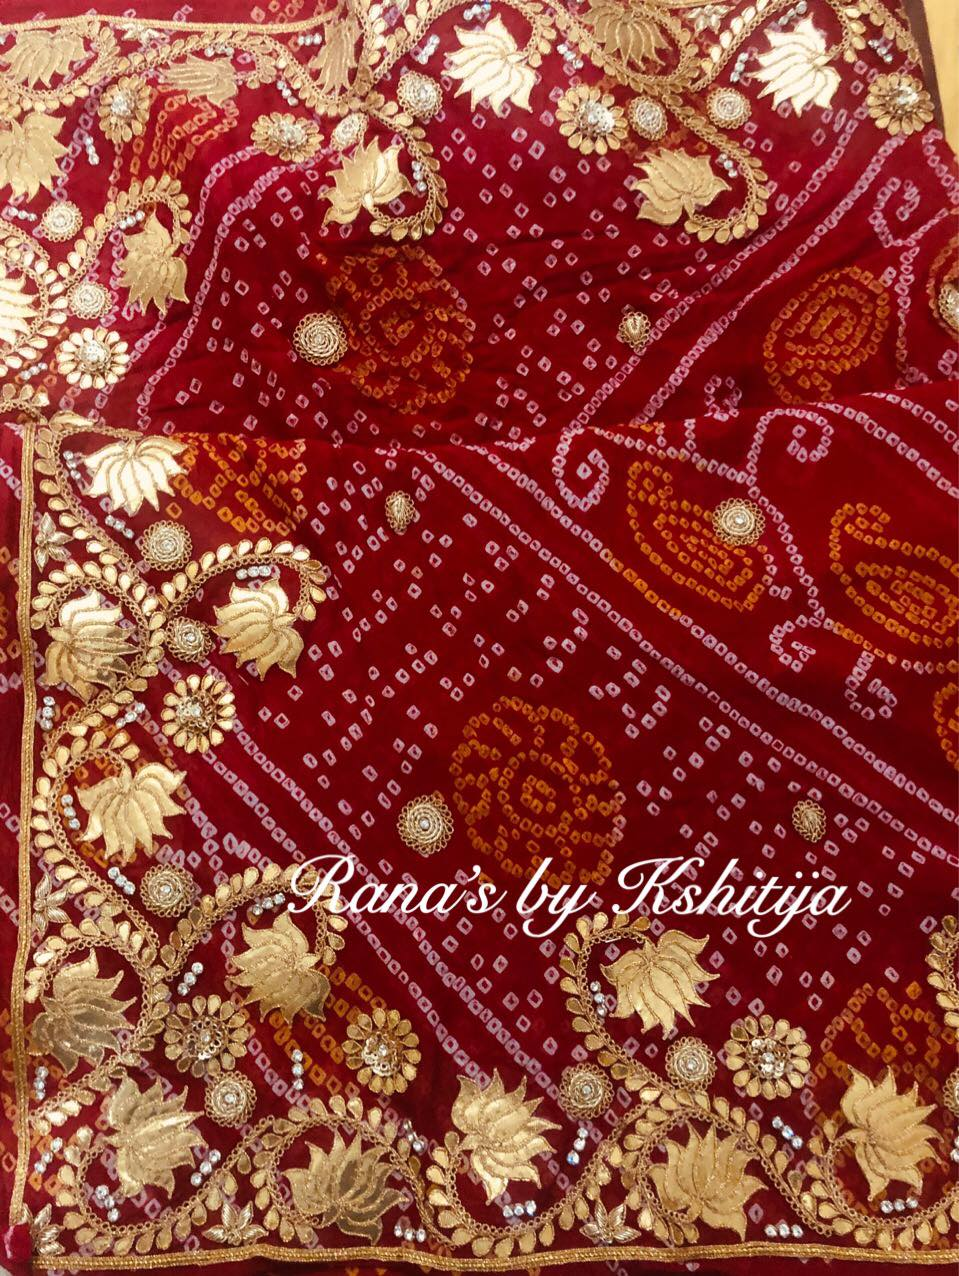 Lotus design pure georgette bandhani saree - Rana's by Kshitija